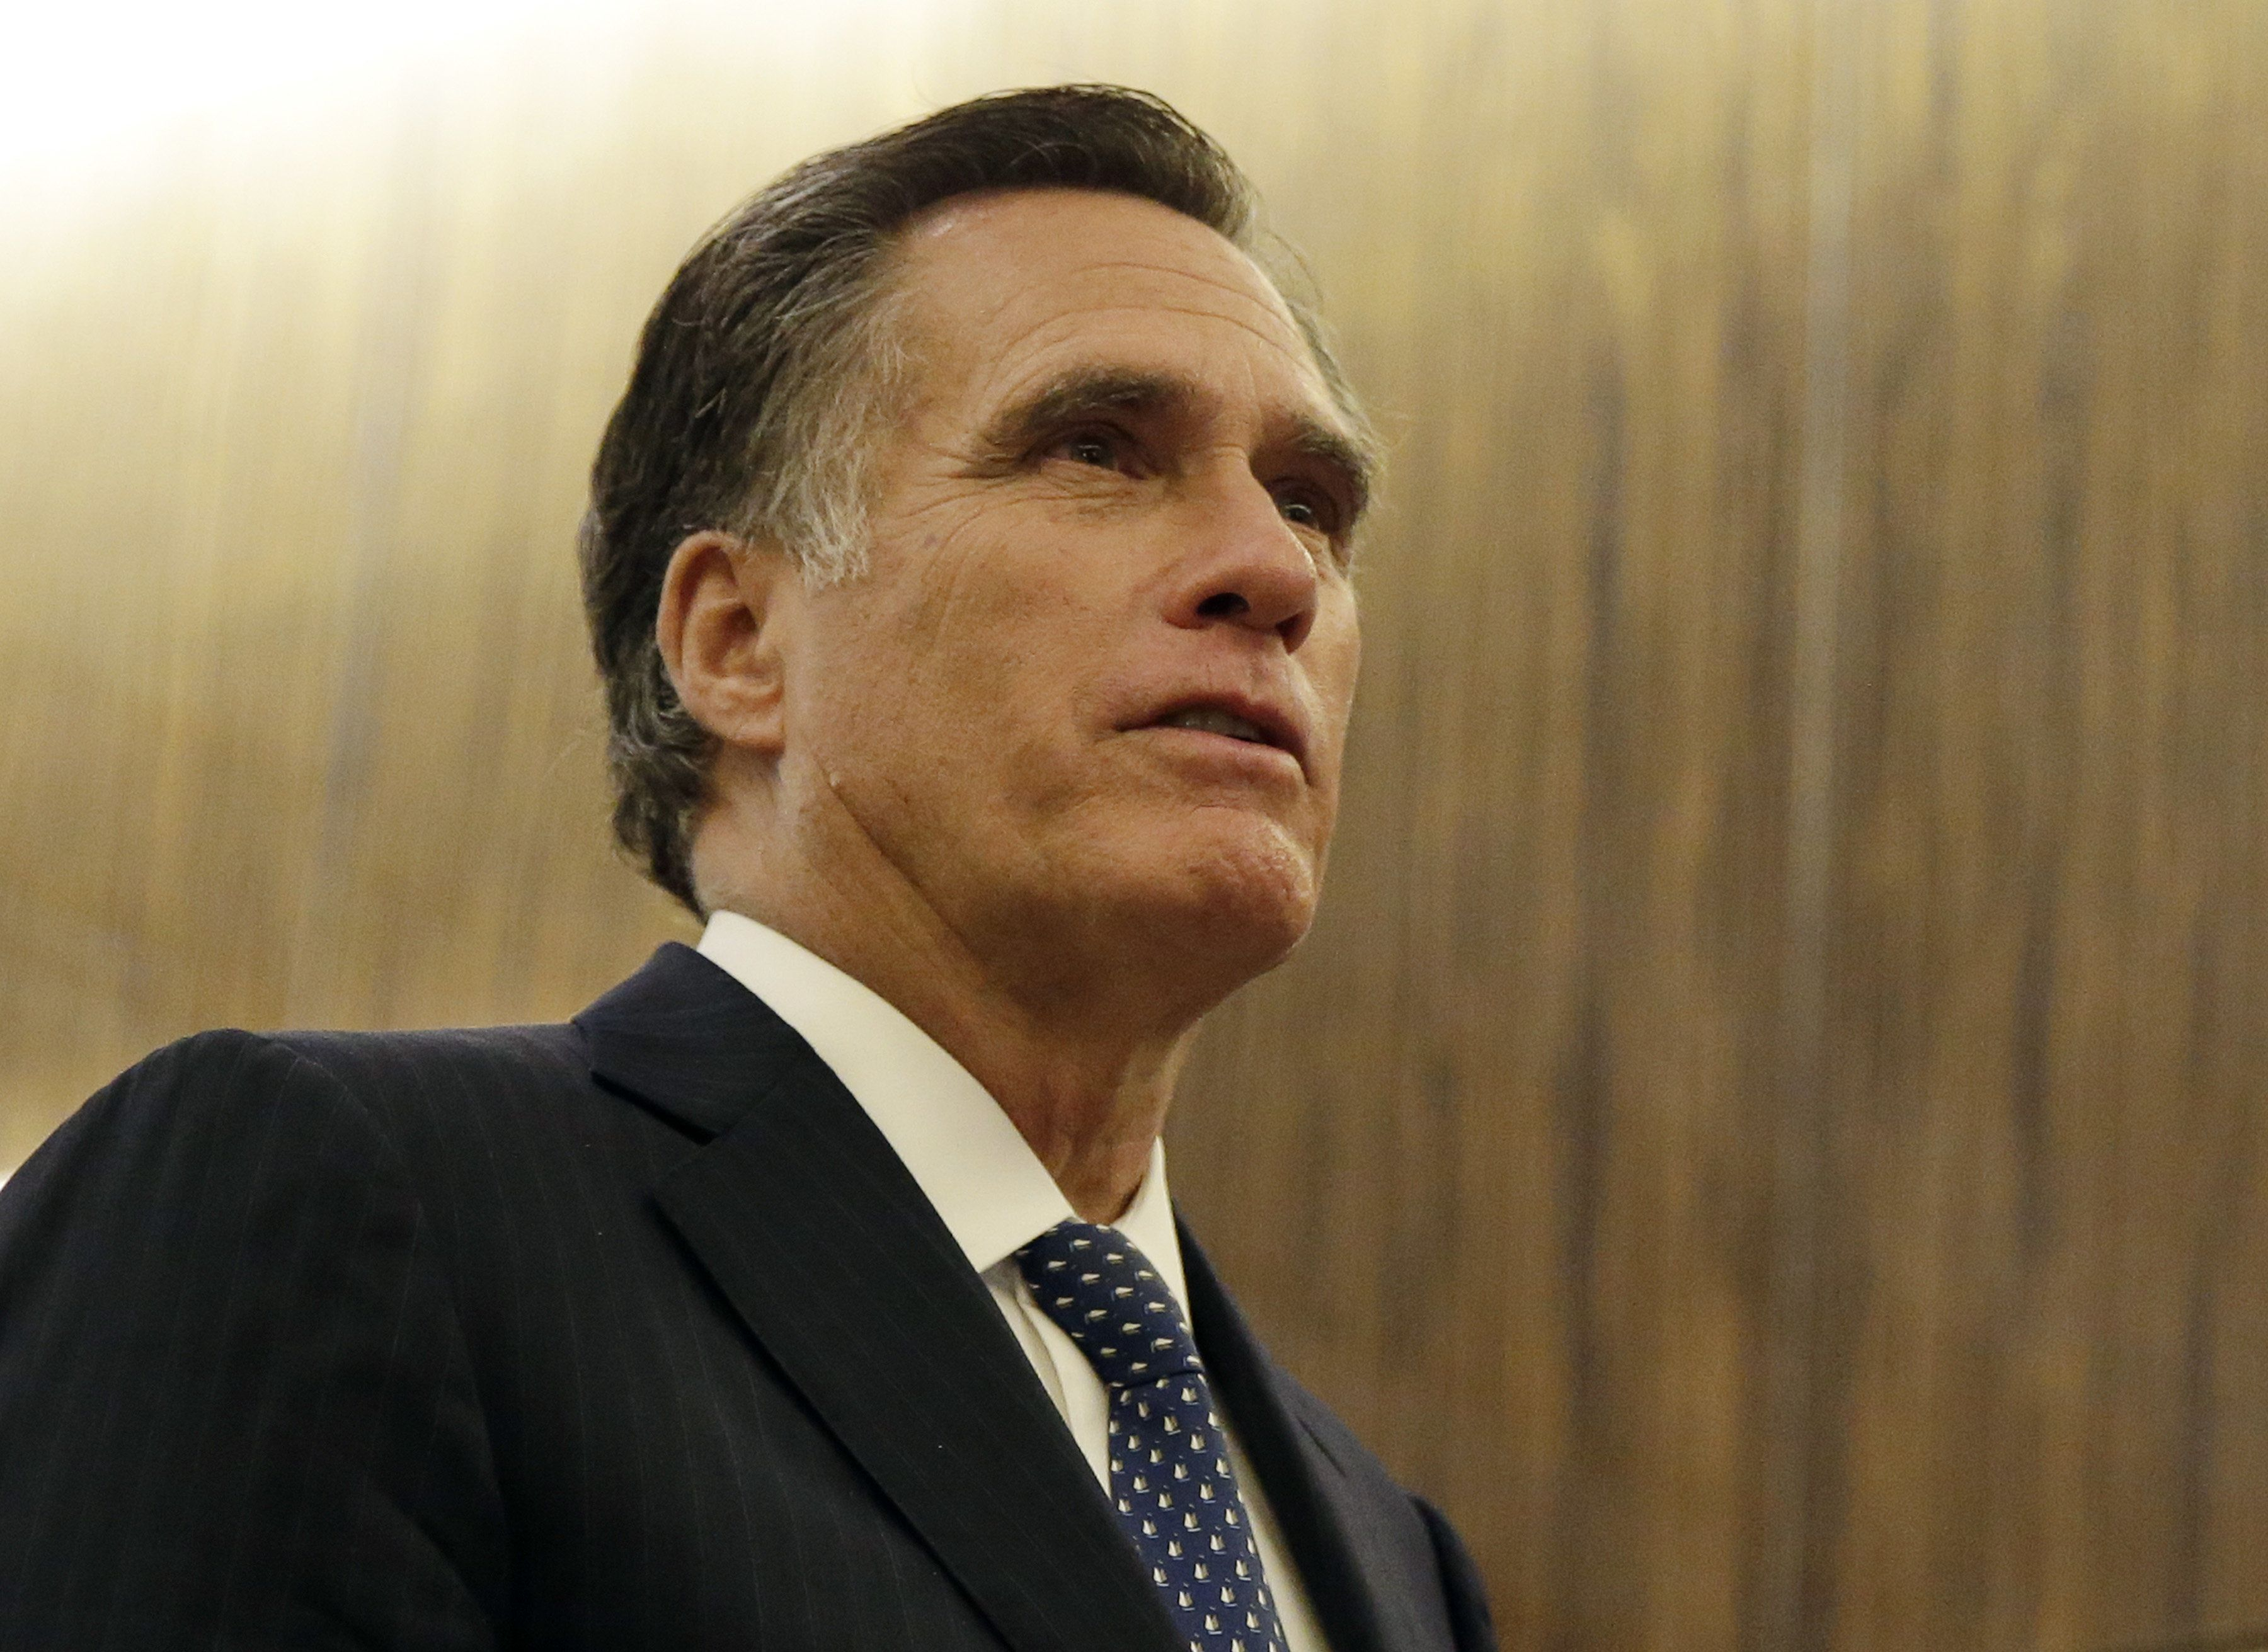 Mitt Romney, former governor of Massachusetts, reacts while speaking to members of the media after a dinner with U.S. President-elect Donald Trump at Jean Georges Restaurant in New York, U.S., on Tuesday, Nov. 29, 2016. Romney said he has increasing hope President-elect Donald Trump will lead the U.S. to a better future. Photographer: John Angelillo/Pool via Bloomberg